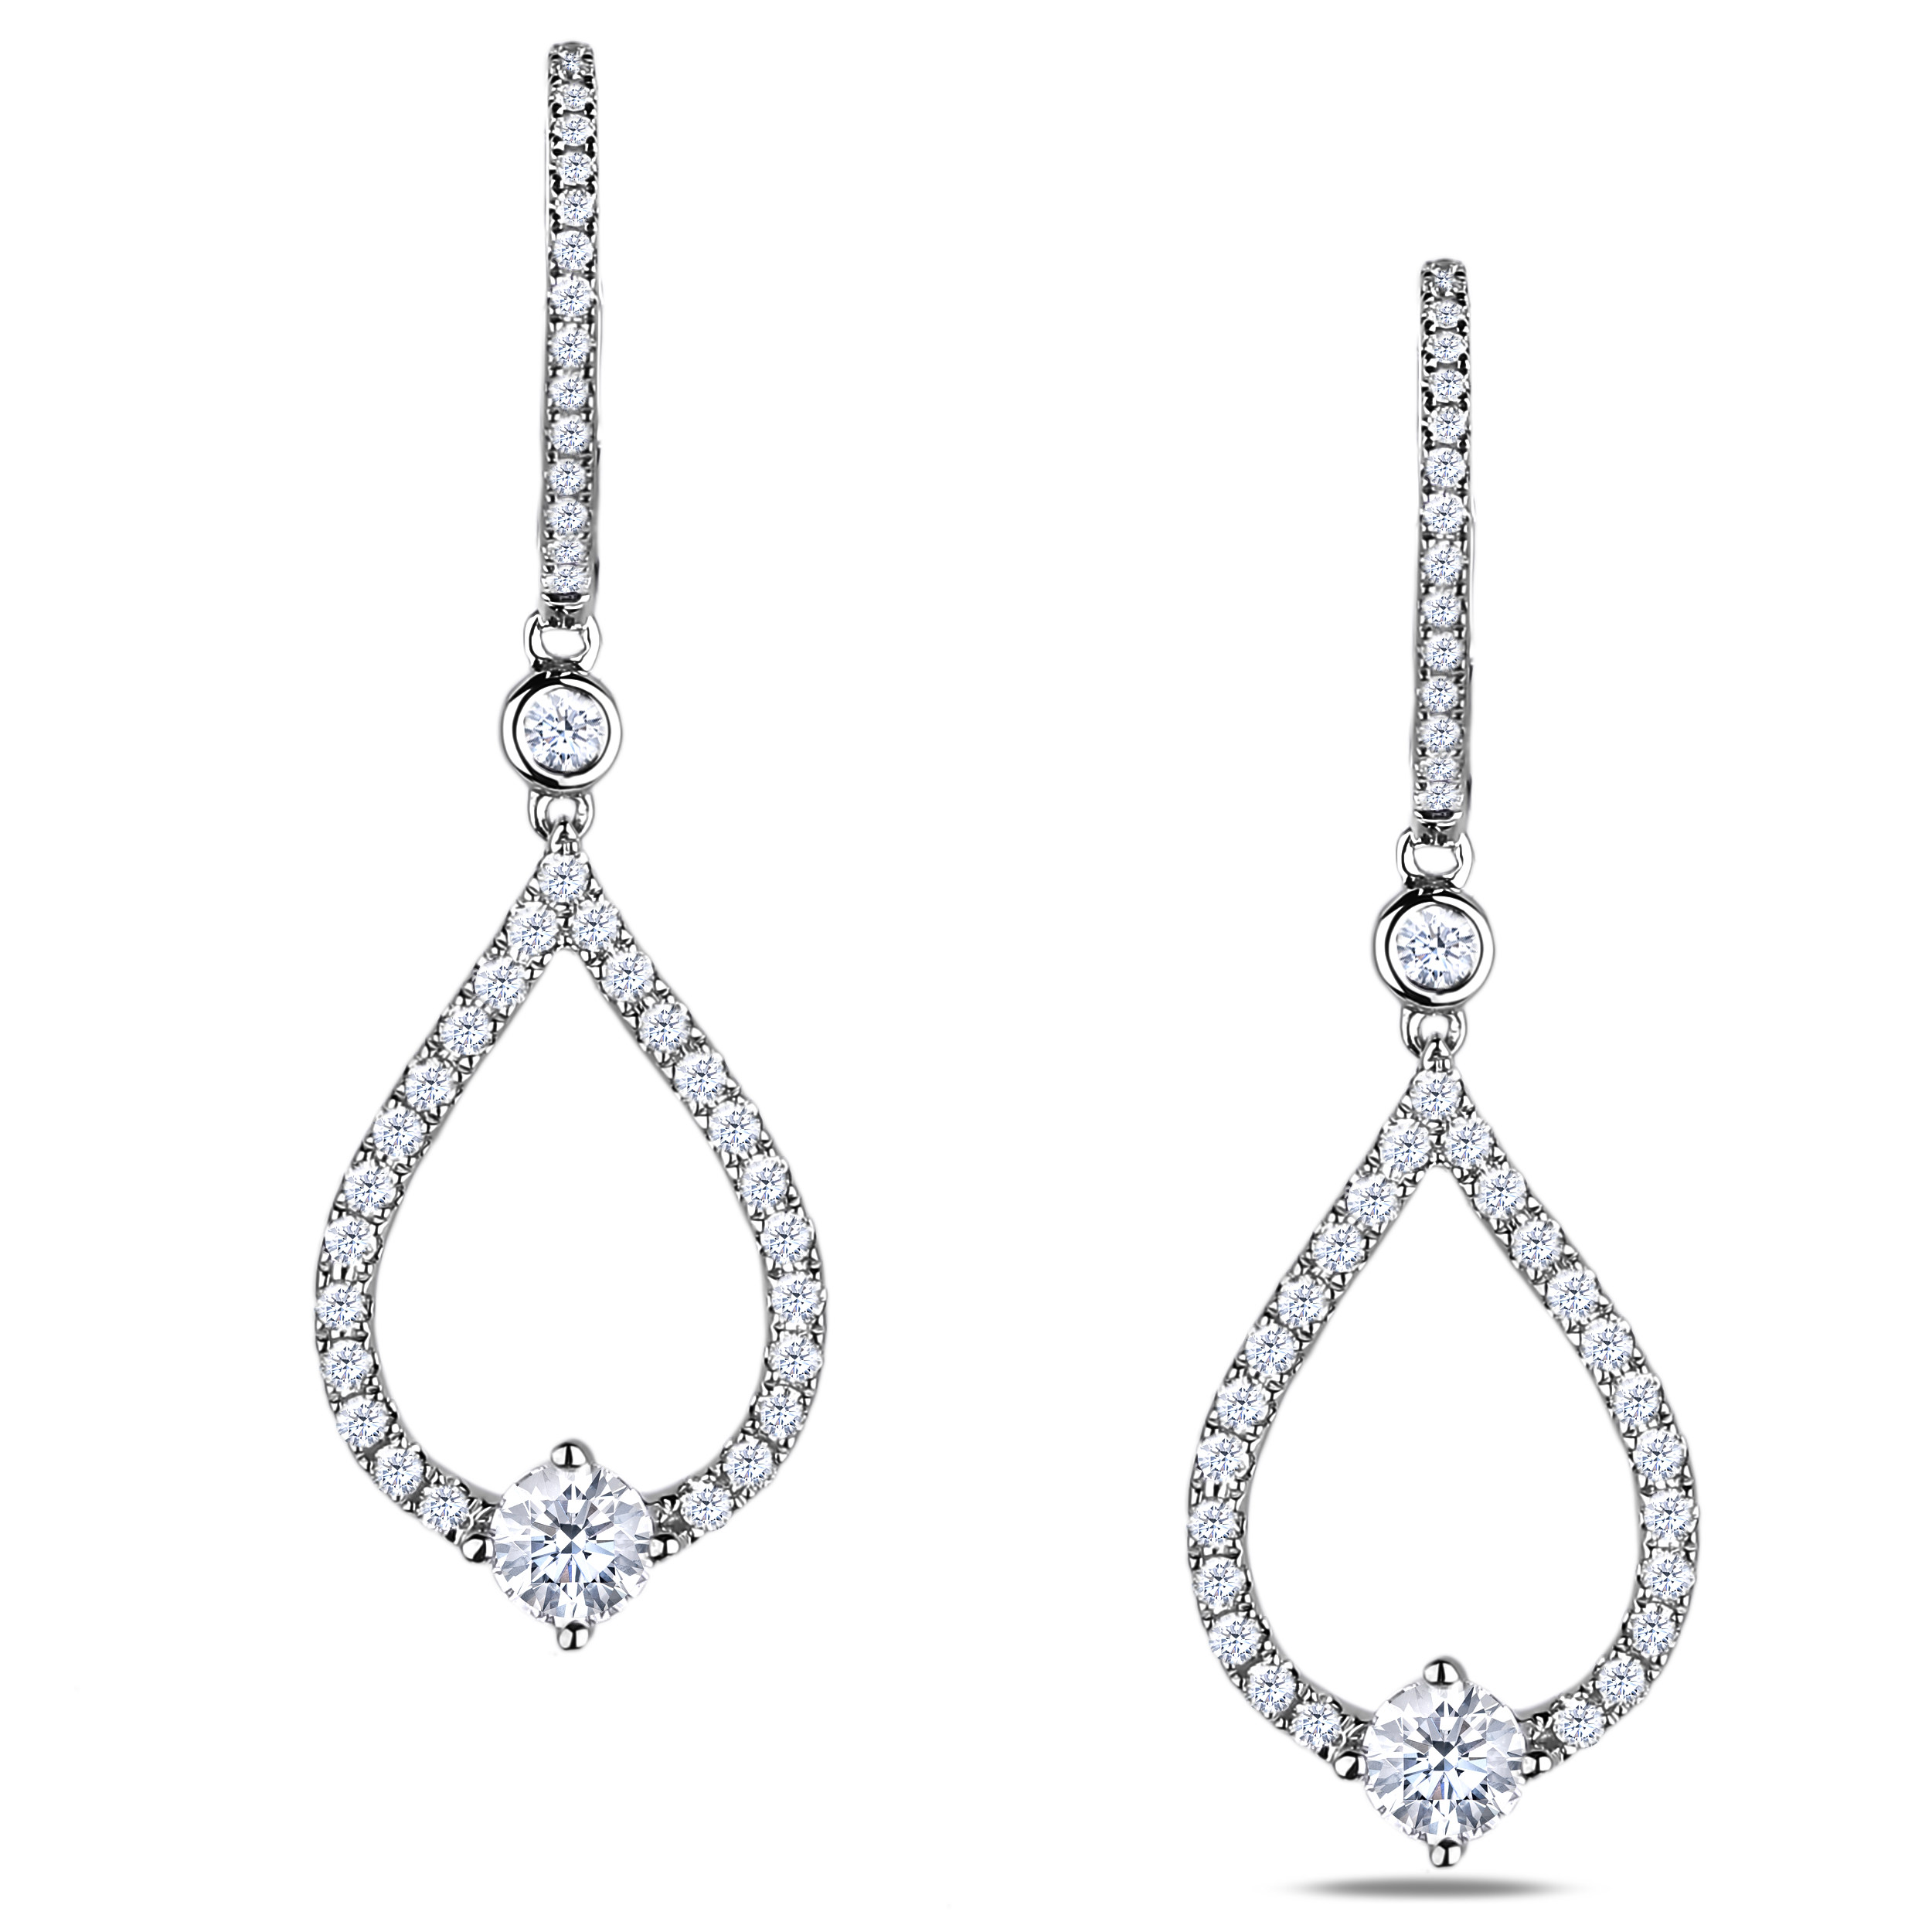 Diamond Dangle Earrings SGP209-294P (Earrings)